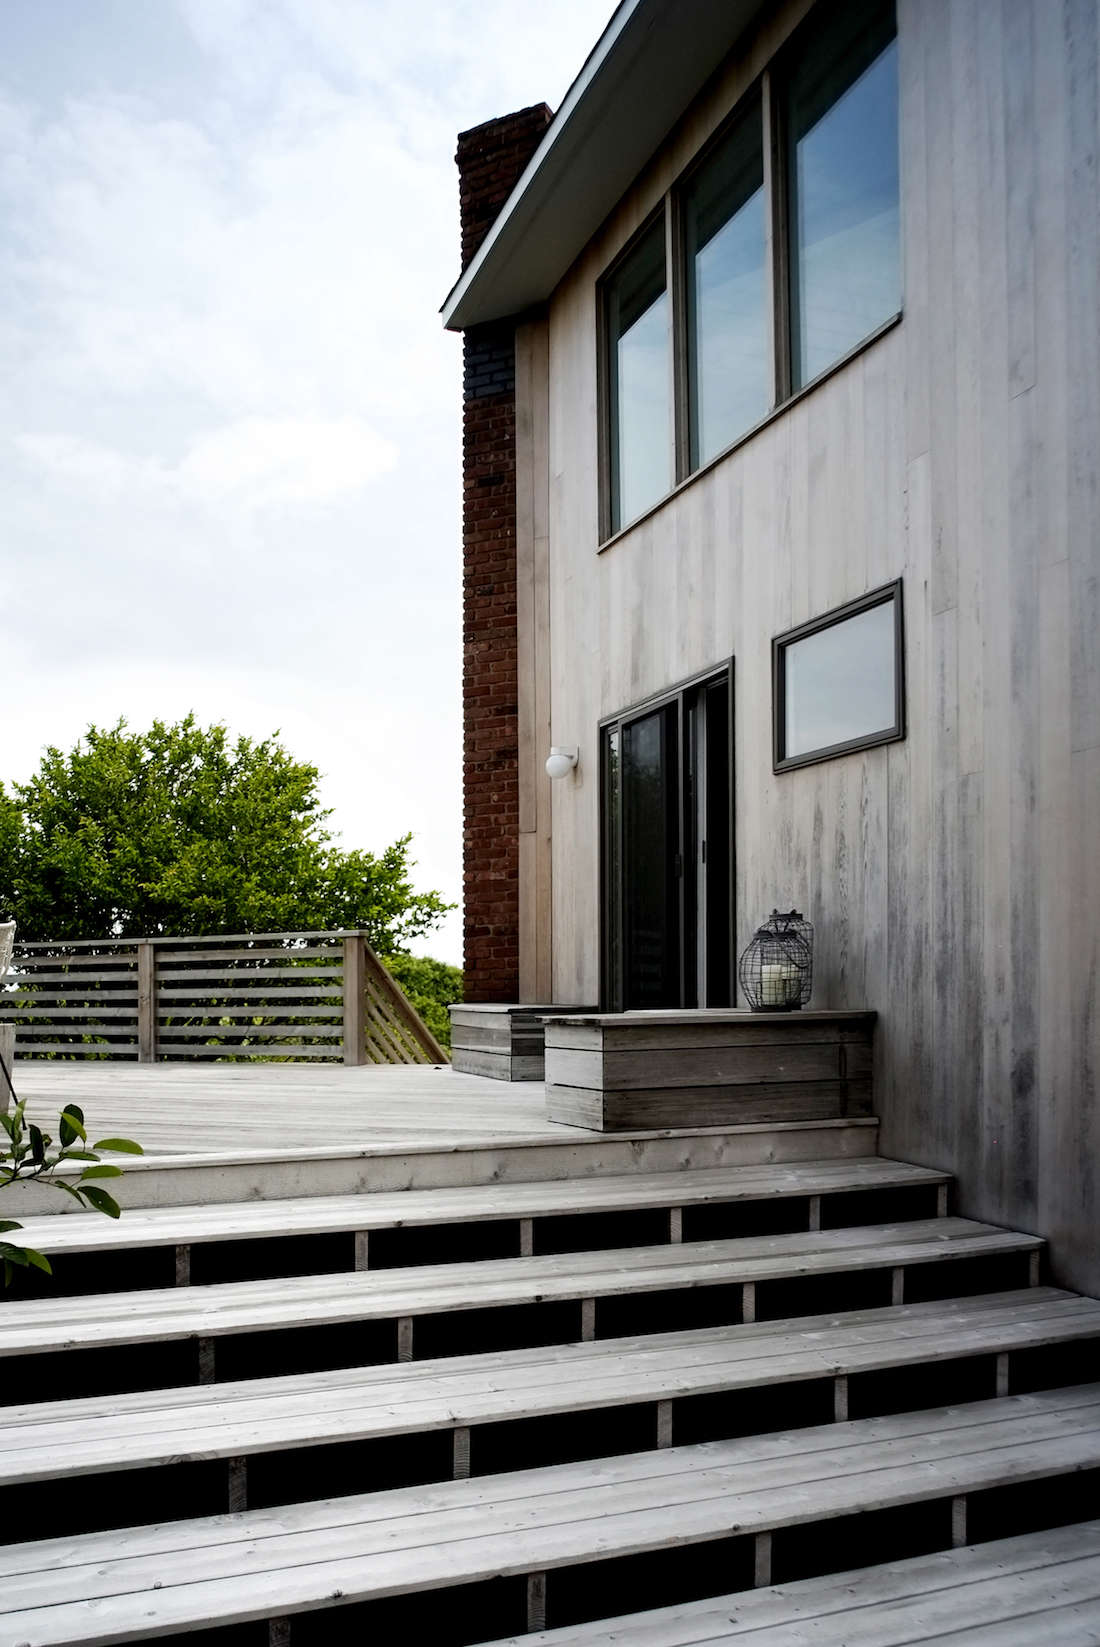 The existing cedar siding and outdoor lighting was original to the house, which sits atop a densely wooded bluff at the end of a rugged dirt road in Montauk.